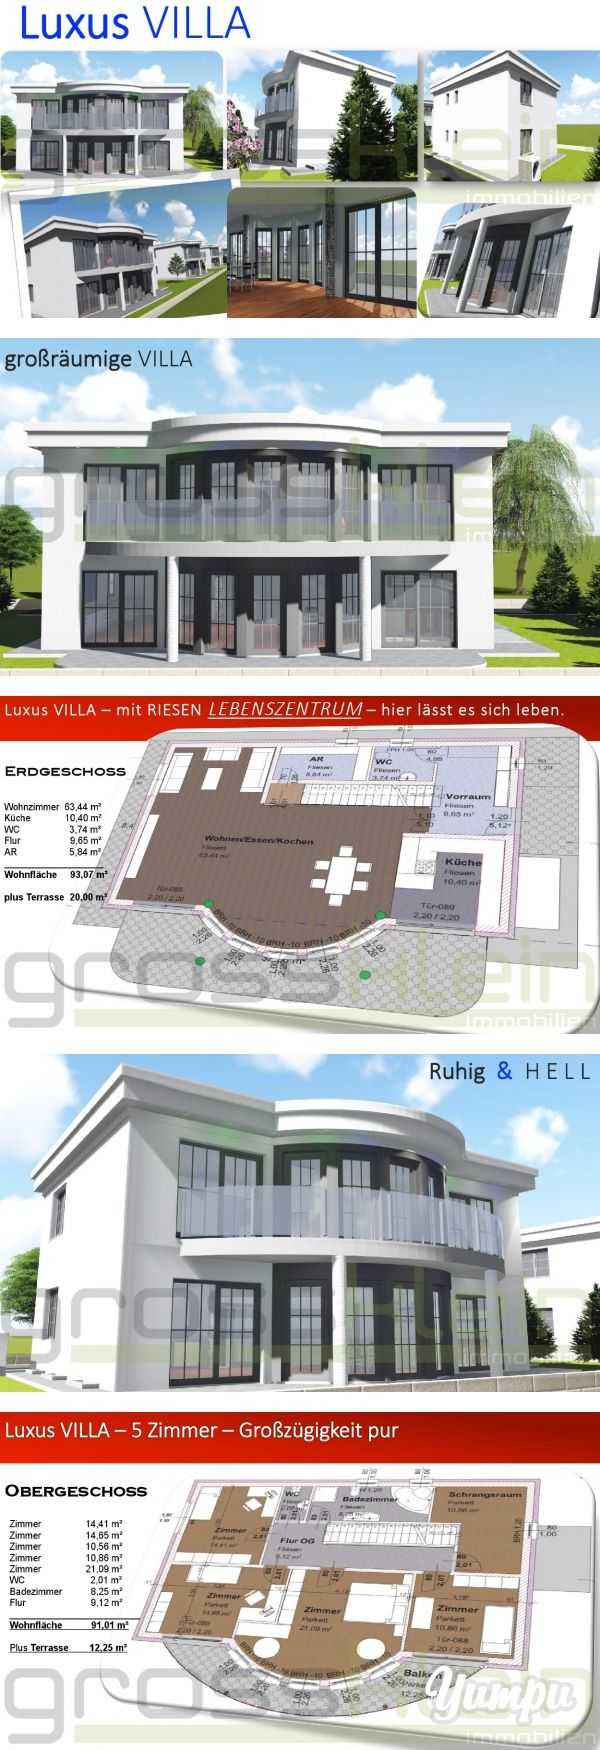 ^ 1000+ images about Haus on Pinterest he sims, House plans and House